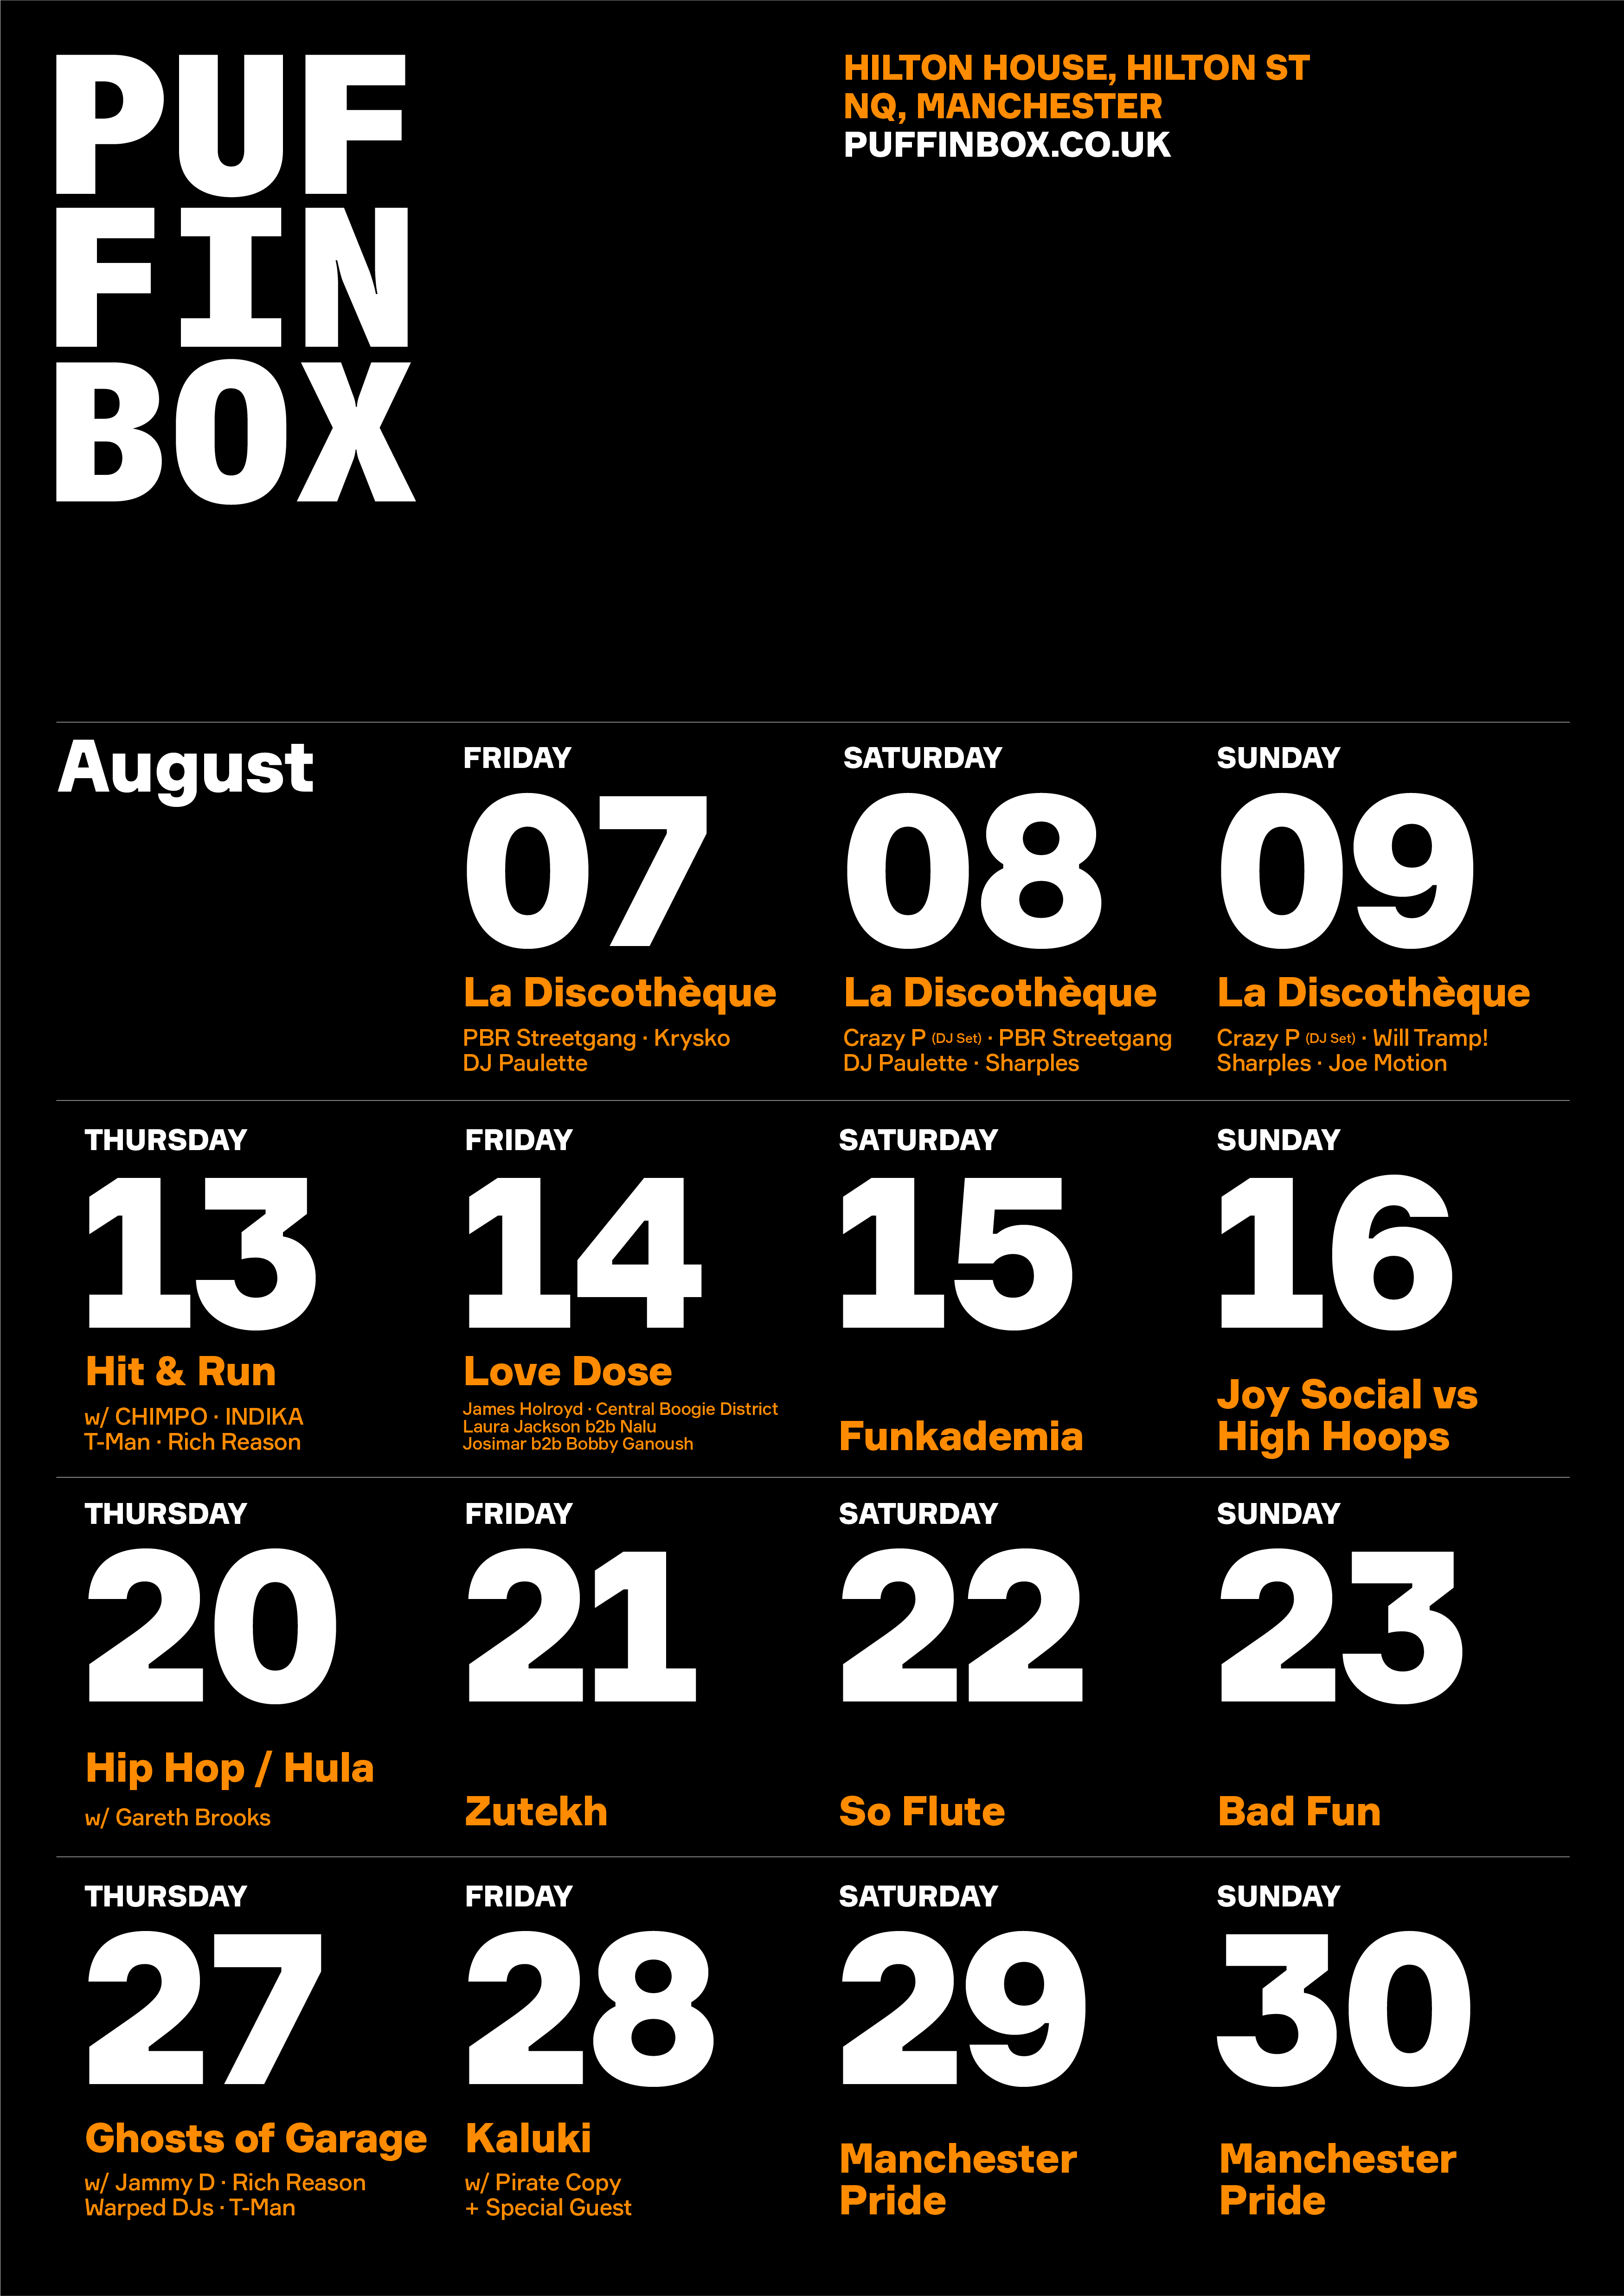 Socially Distanced Clubbing at Puffin Box, Manchester - The August Line Up